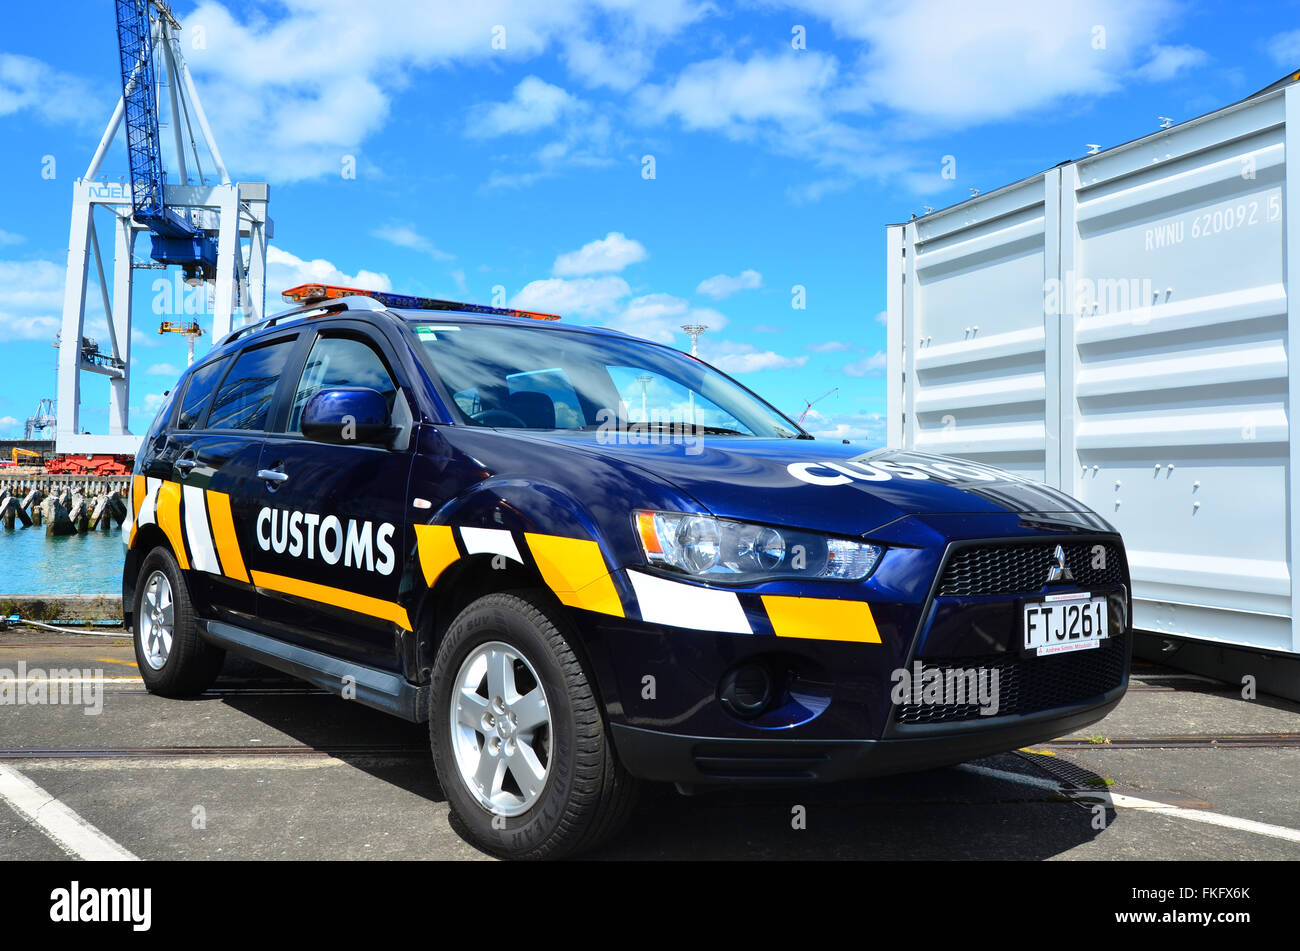 AUCKLAND,  NZL - JAN 30 2016:New Zealand Customs Service vehicle  in Ports of Auckland. The agency responsible for - Stock Image